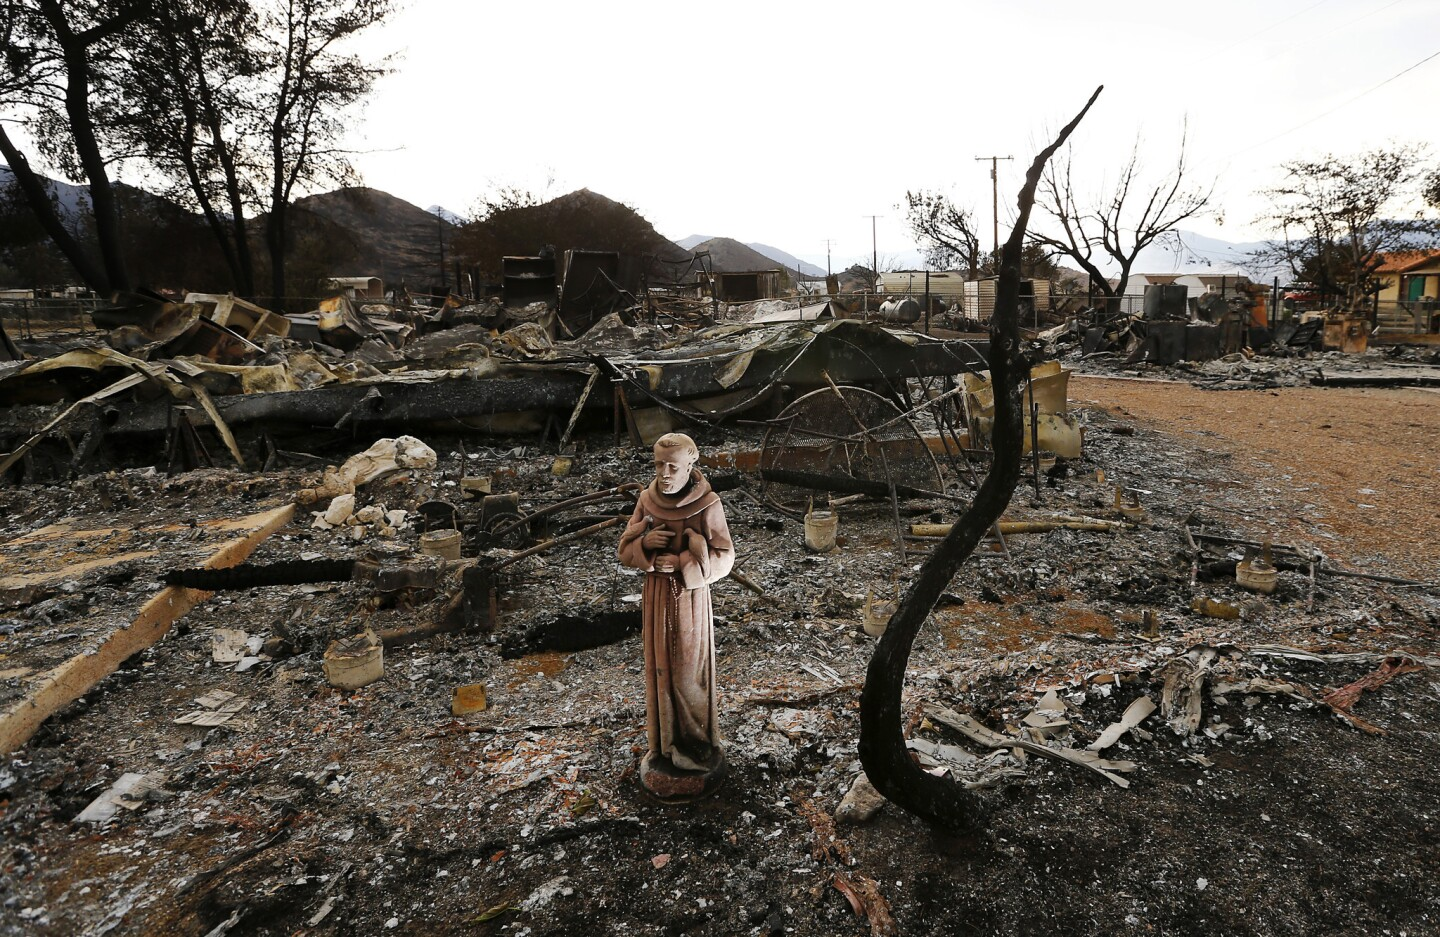 A religious icon stands in the charred remains of a neighborhood in South Lake.